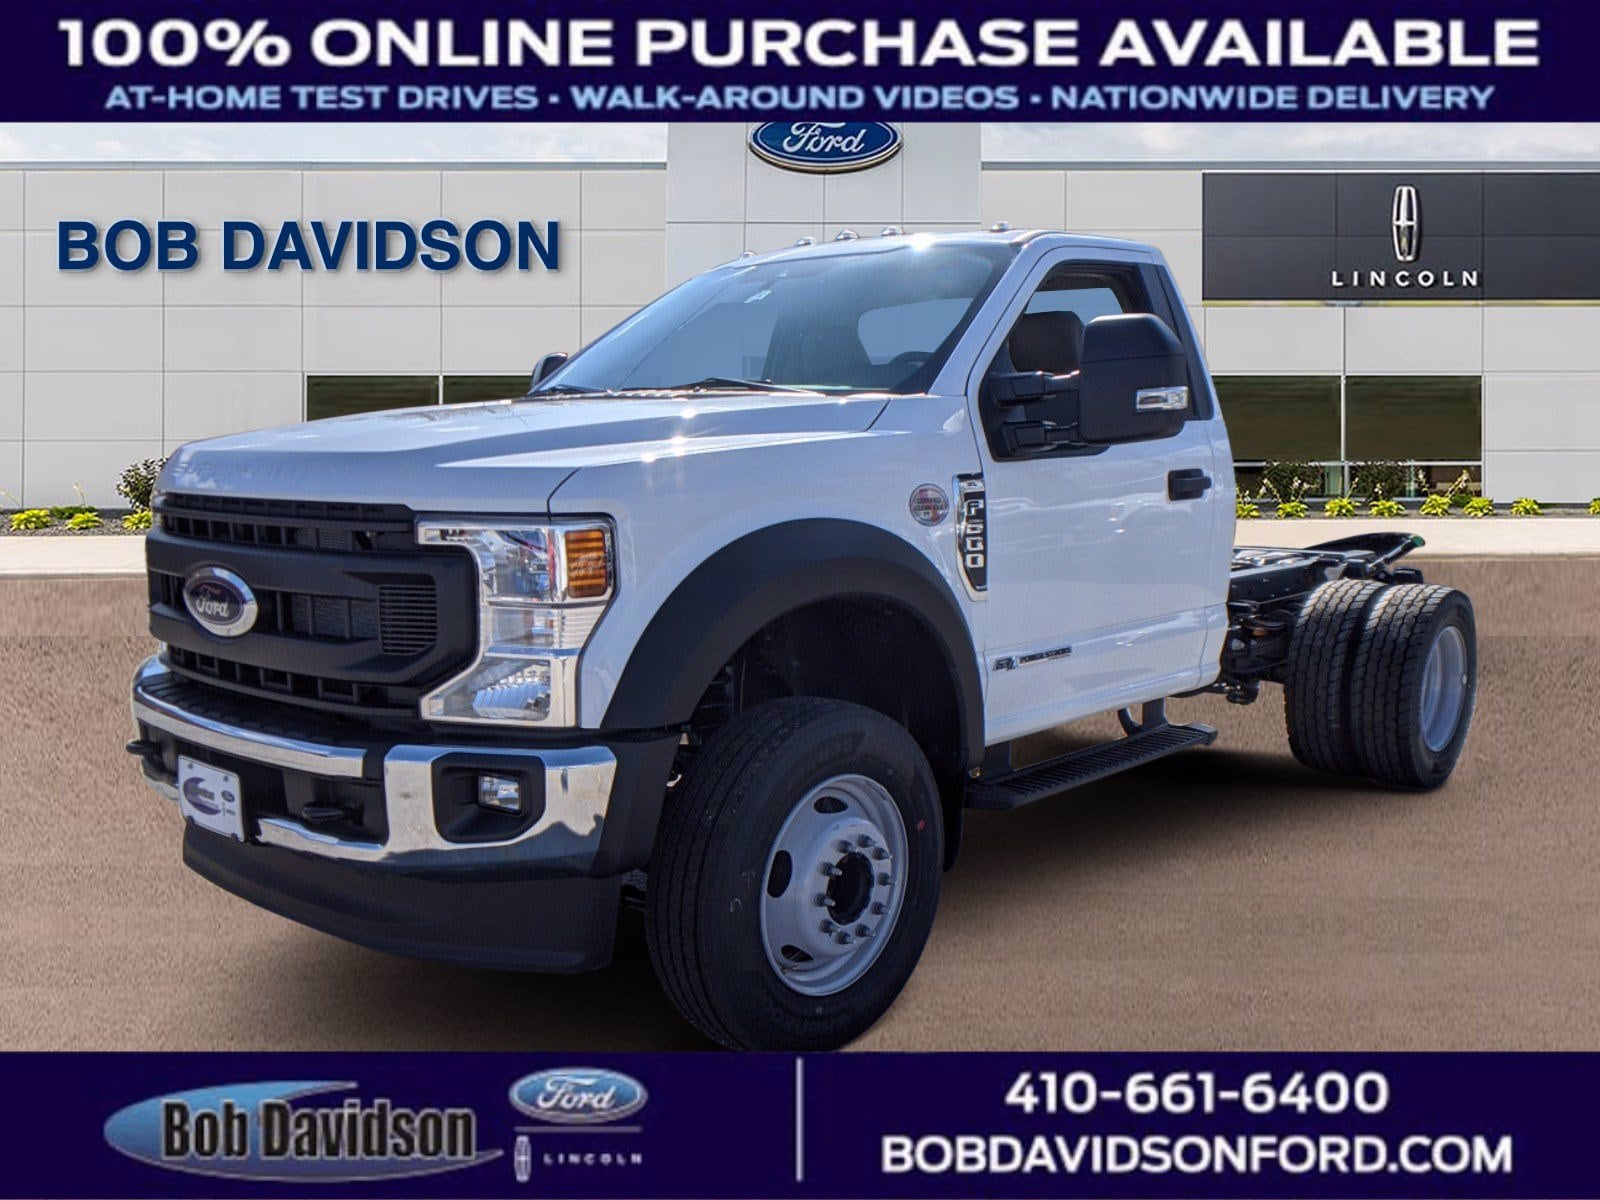 2021 Ford F-600 Chassis F-600 XL Commercial-truck